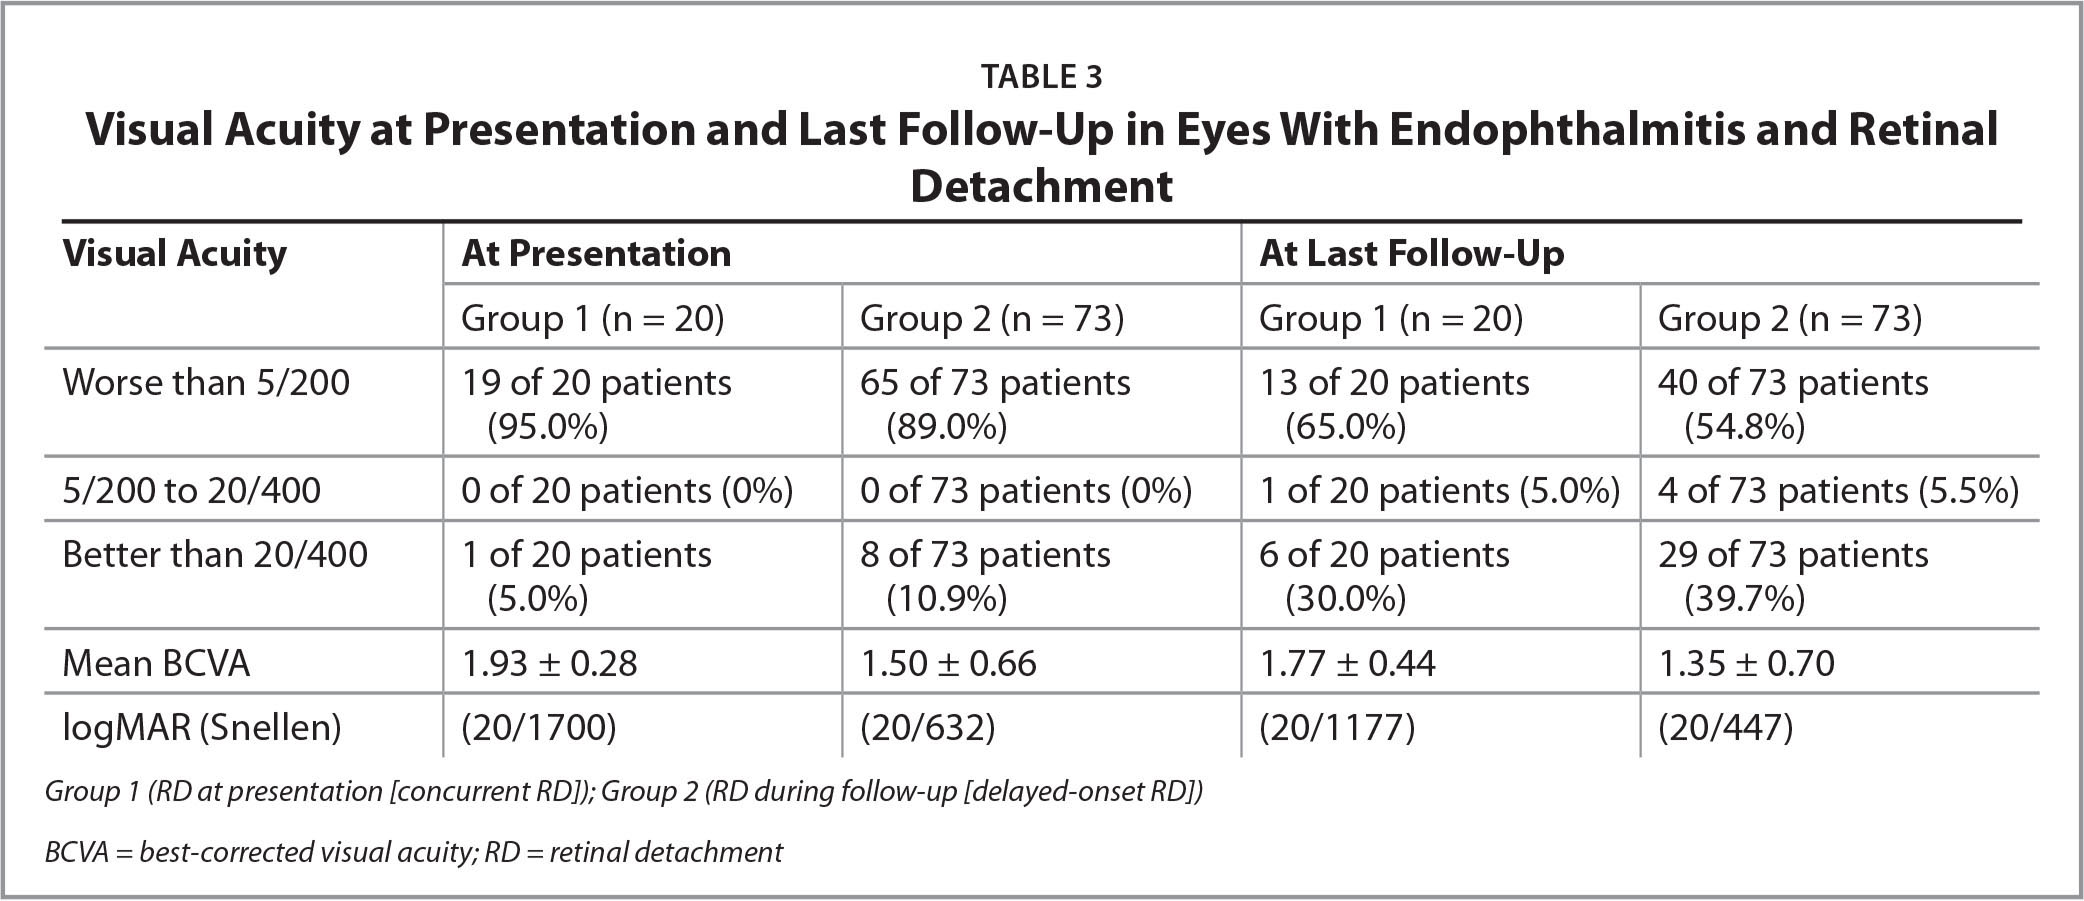 Visual Acuity at Presentation and Last Follow-Up in Eyes With Endophthalmitis and Retinal Detachment